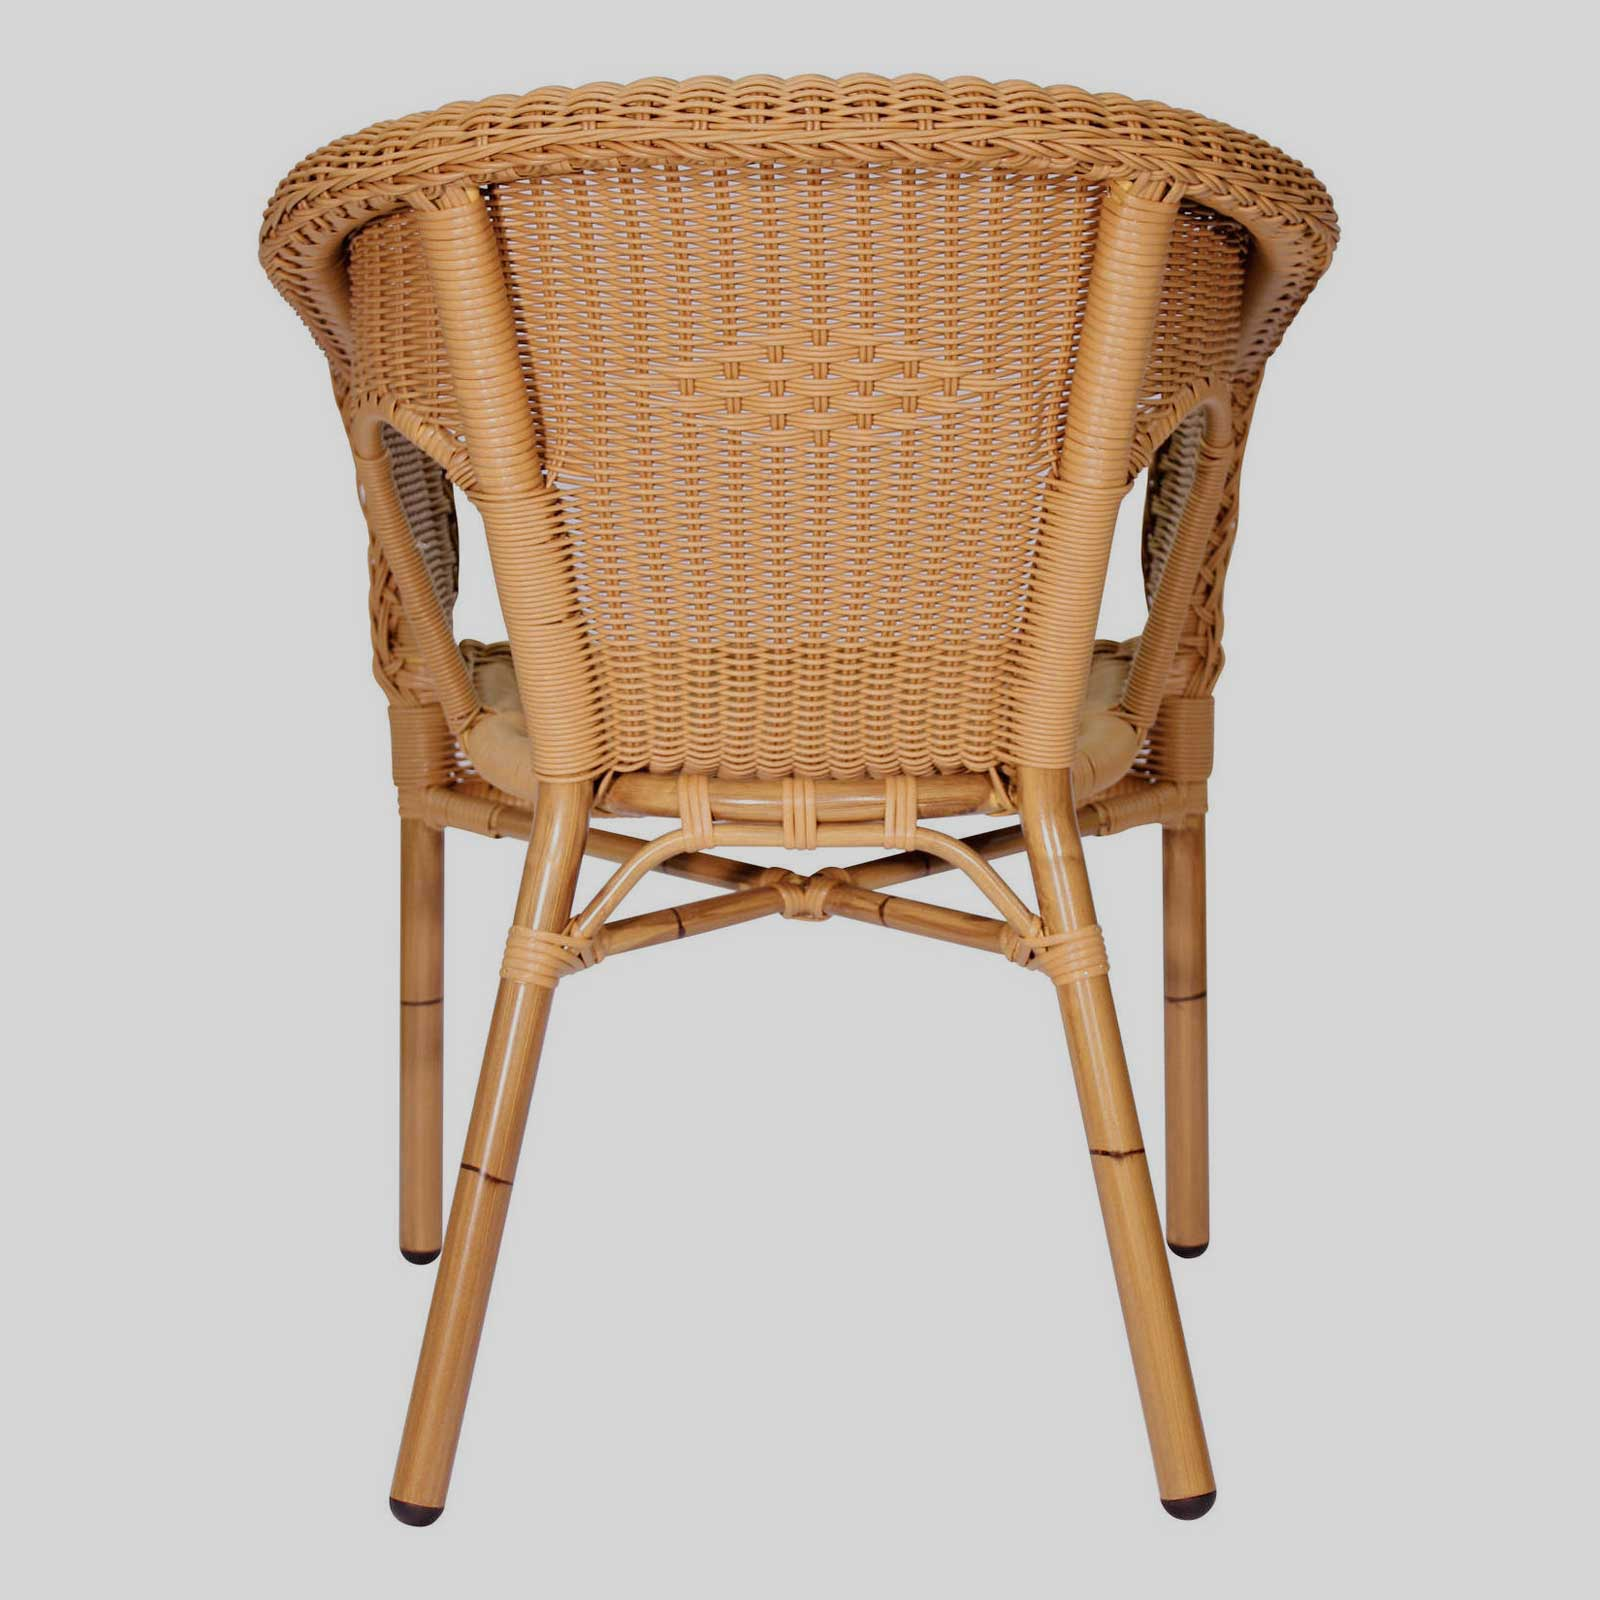 Outdoor wicker chairs brazil concept collections for Outdoor furniture wicker